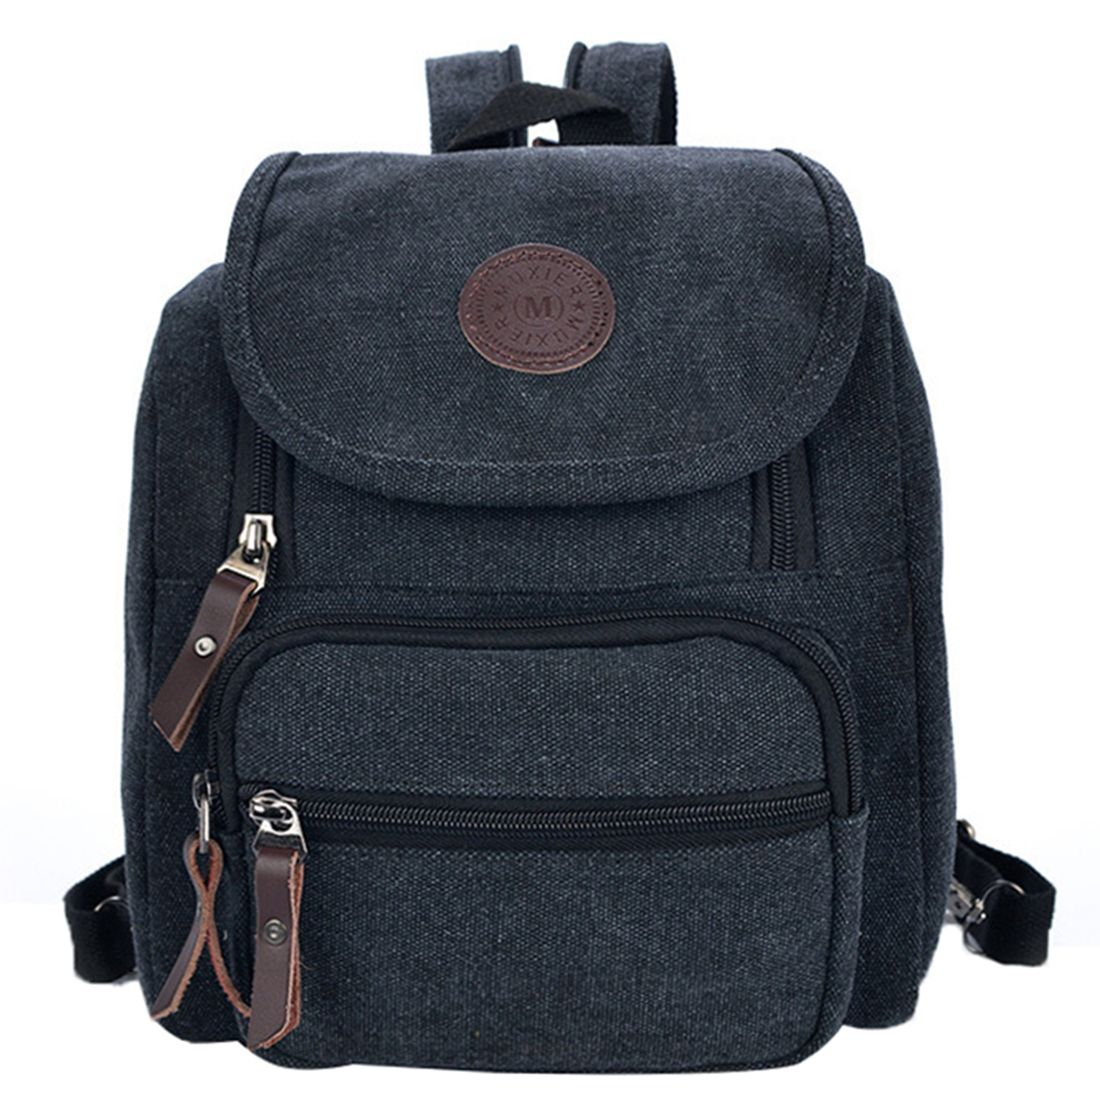 Texu Fashion Canvas Women Backpack School Bag Small Student Female Shoulder Large Capacity Travel Newest Casual Men And Womens Backpacks Students High Quality All Match Vintage Bags